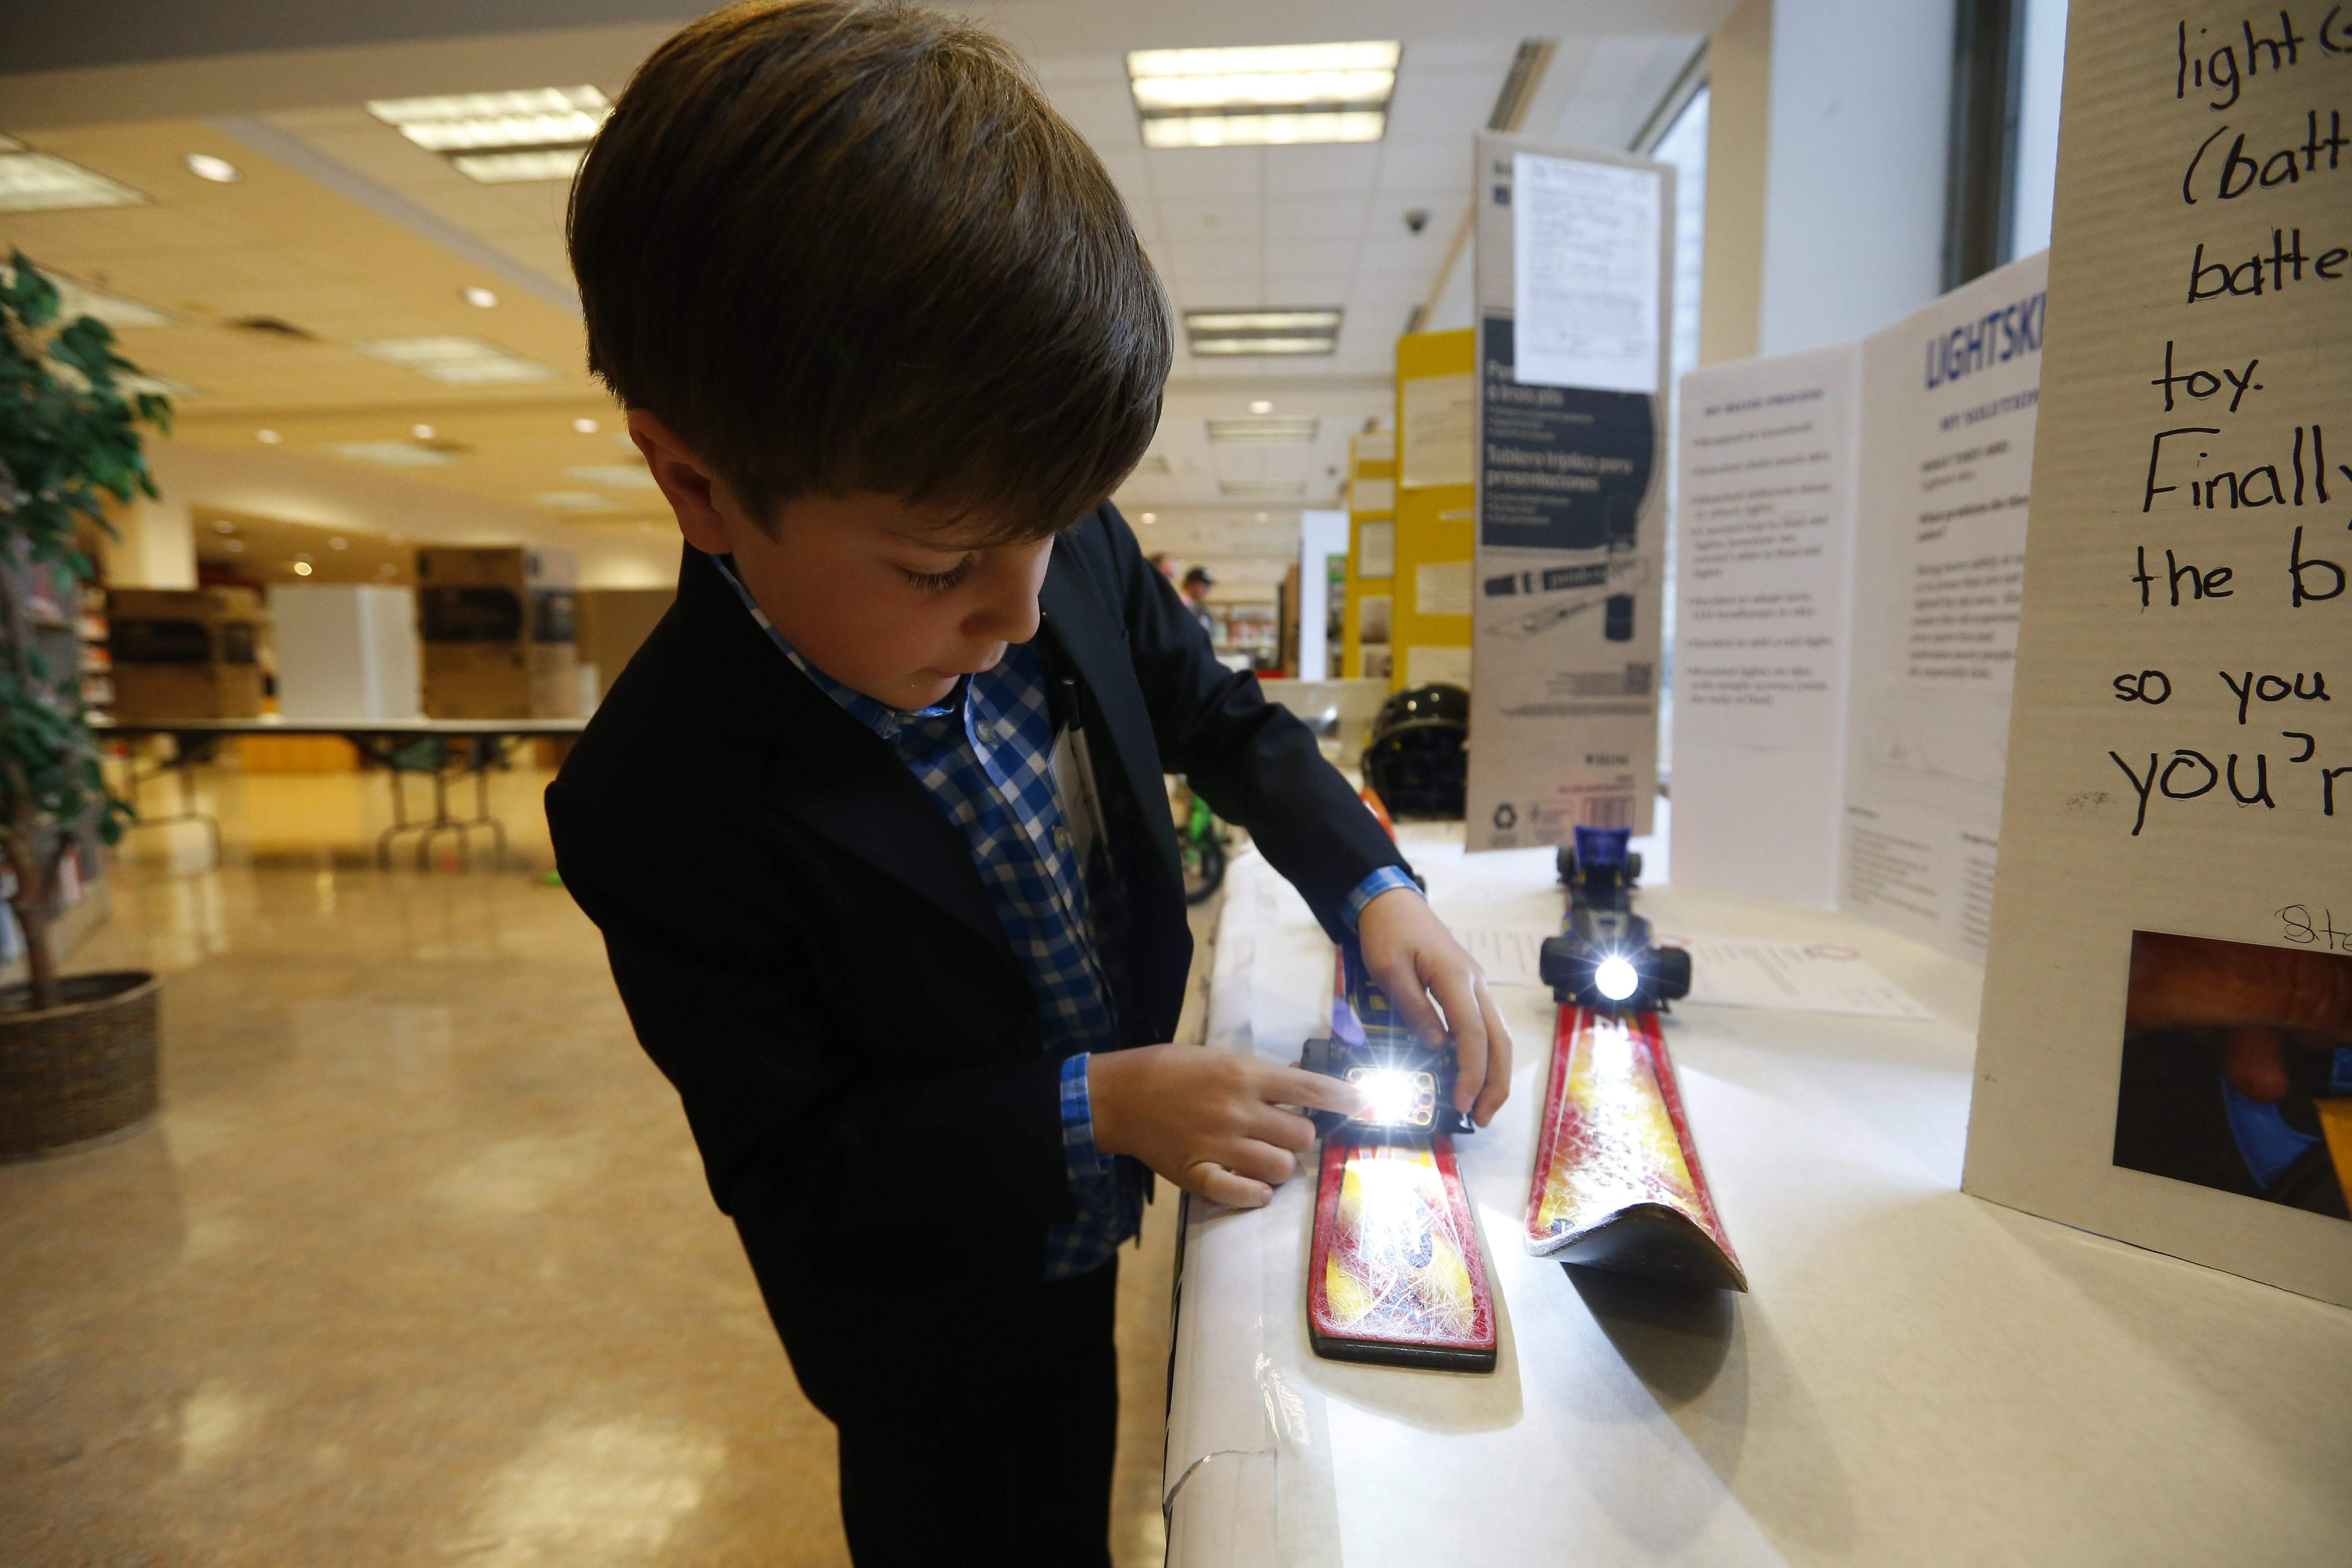 Matthew Murad, a second-grader from Olmsted School 64, presents his invention, Lightskis, during the 14th annual WNY Invention Convention. The competition was held on Sunday, May 1st, at the Central Library in downtown Buffalo.